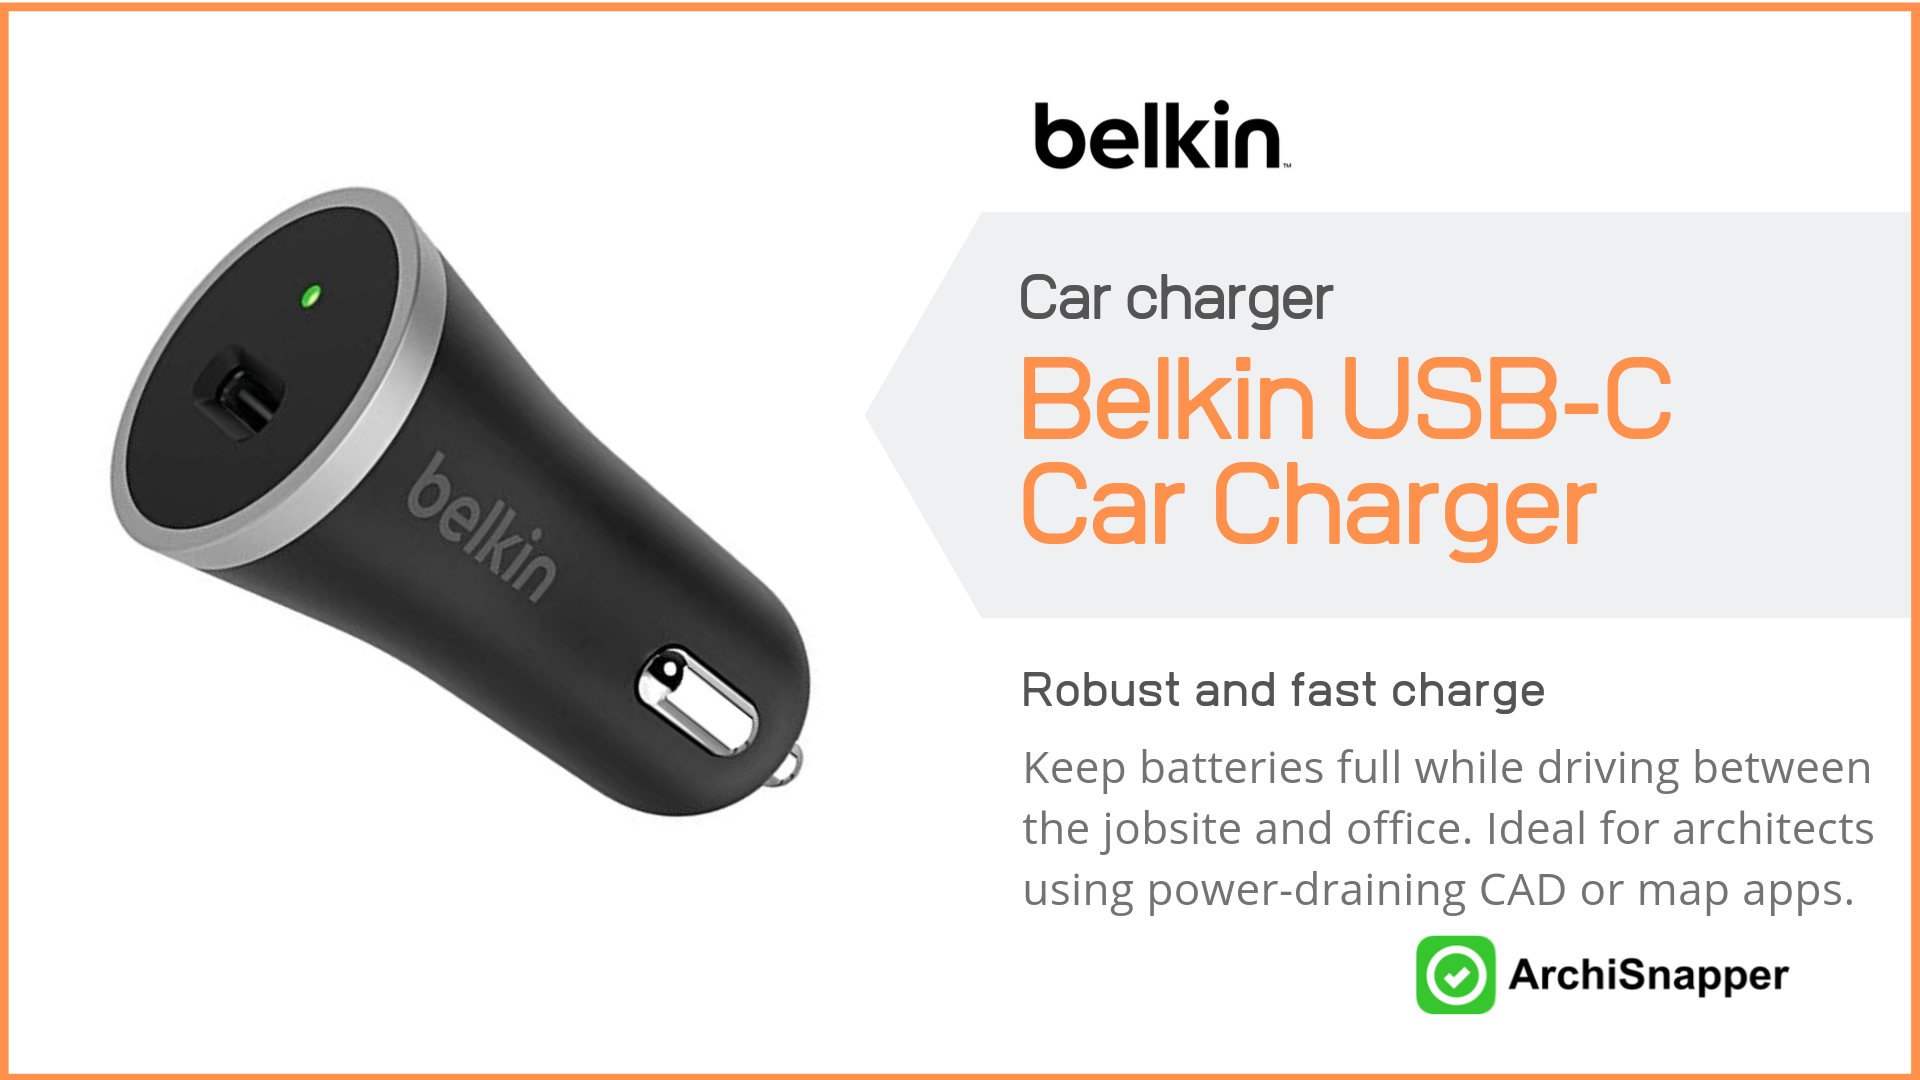 Belkin USB-C Car Charger | Top Tech for Architects Presented by Archisnapper.